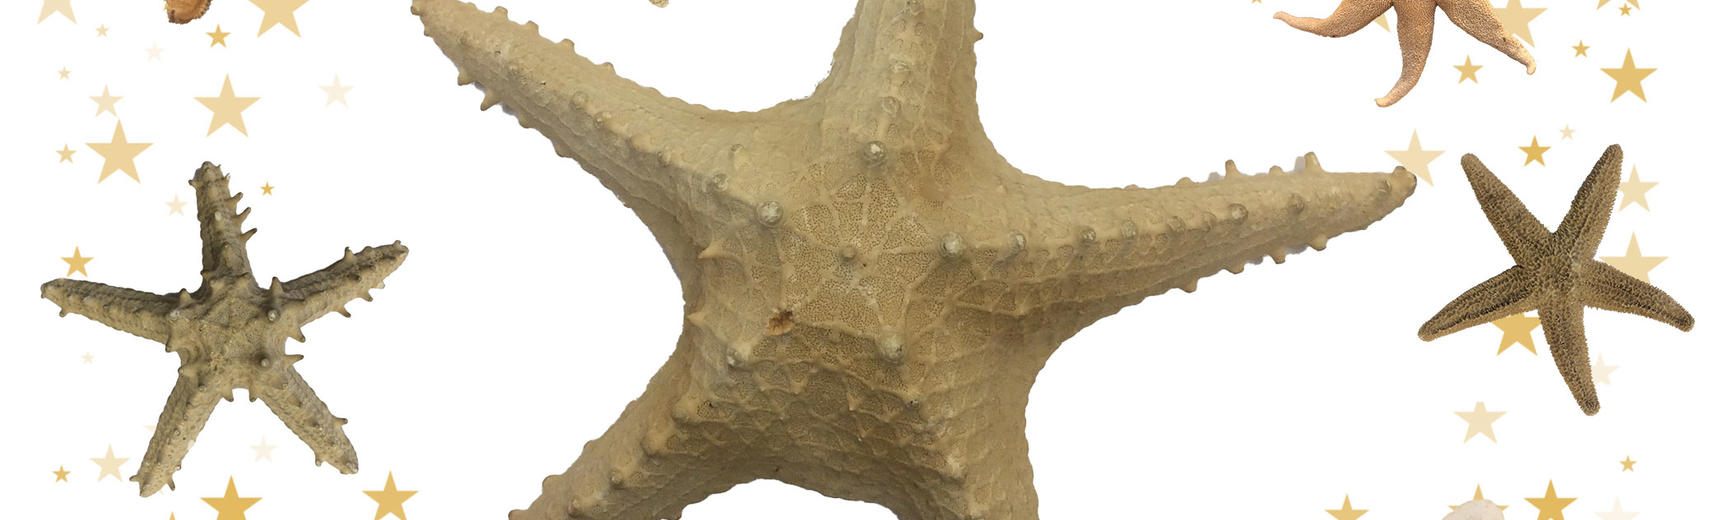 An image of various starfishes on a white background, with a large starfish in the centre and small gold and beige coloured stars around the outer image edges.